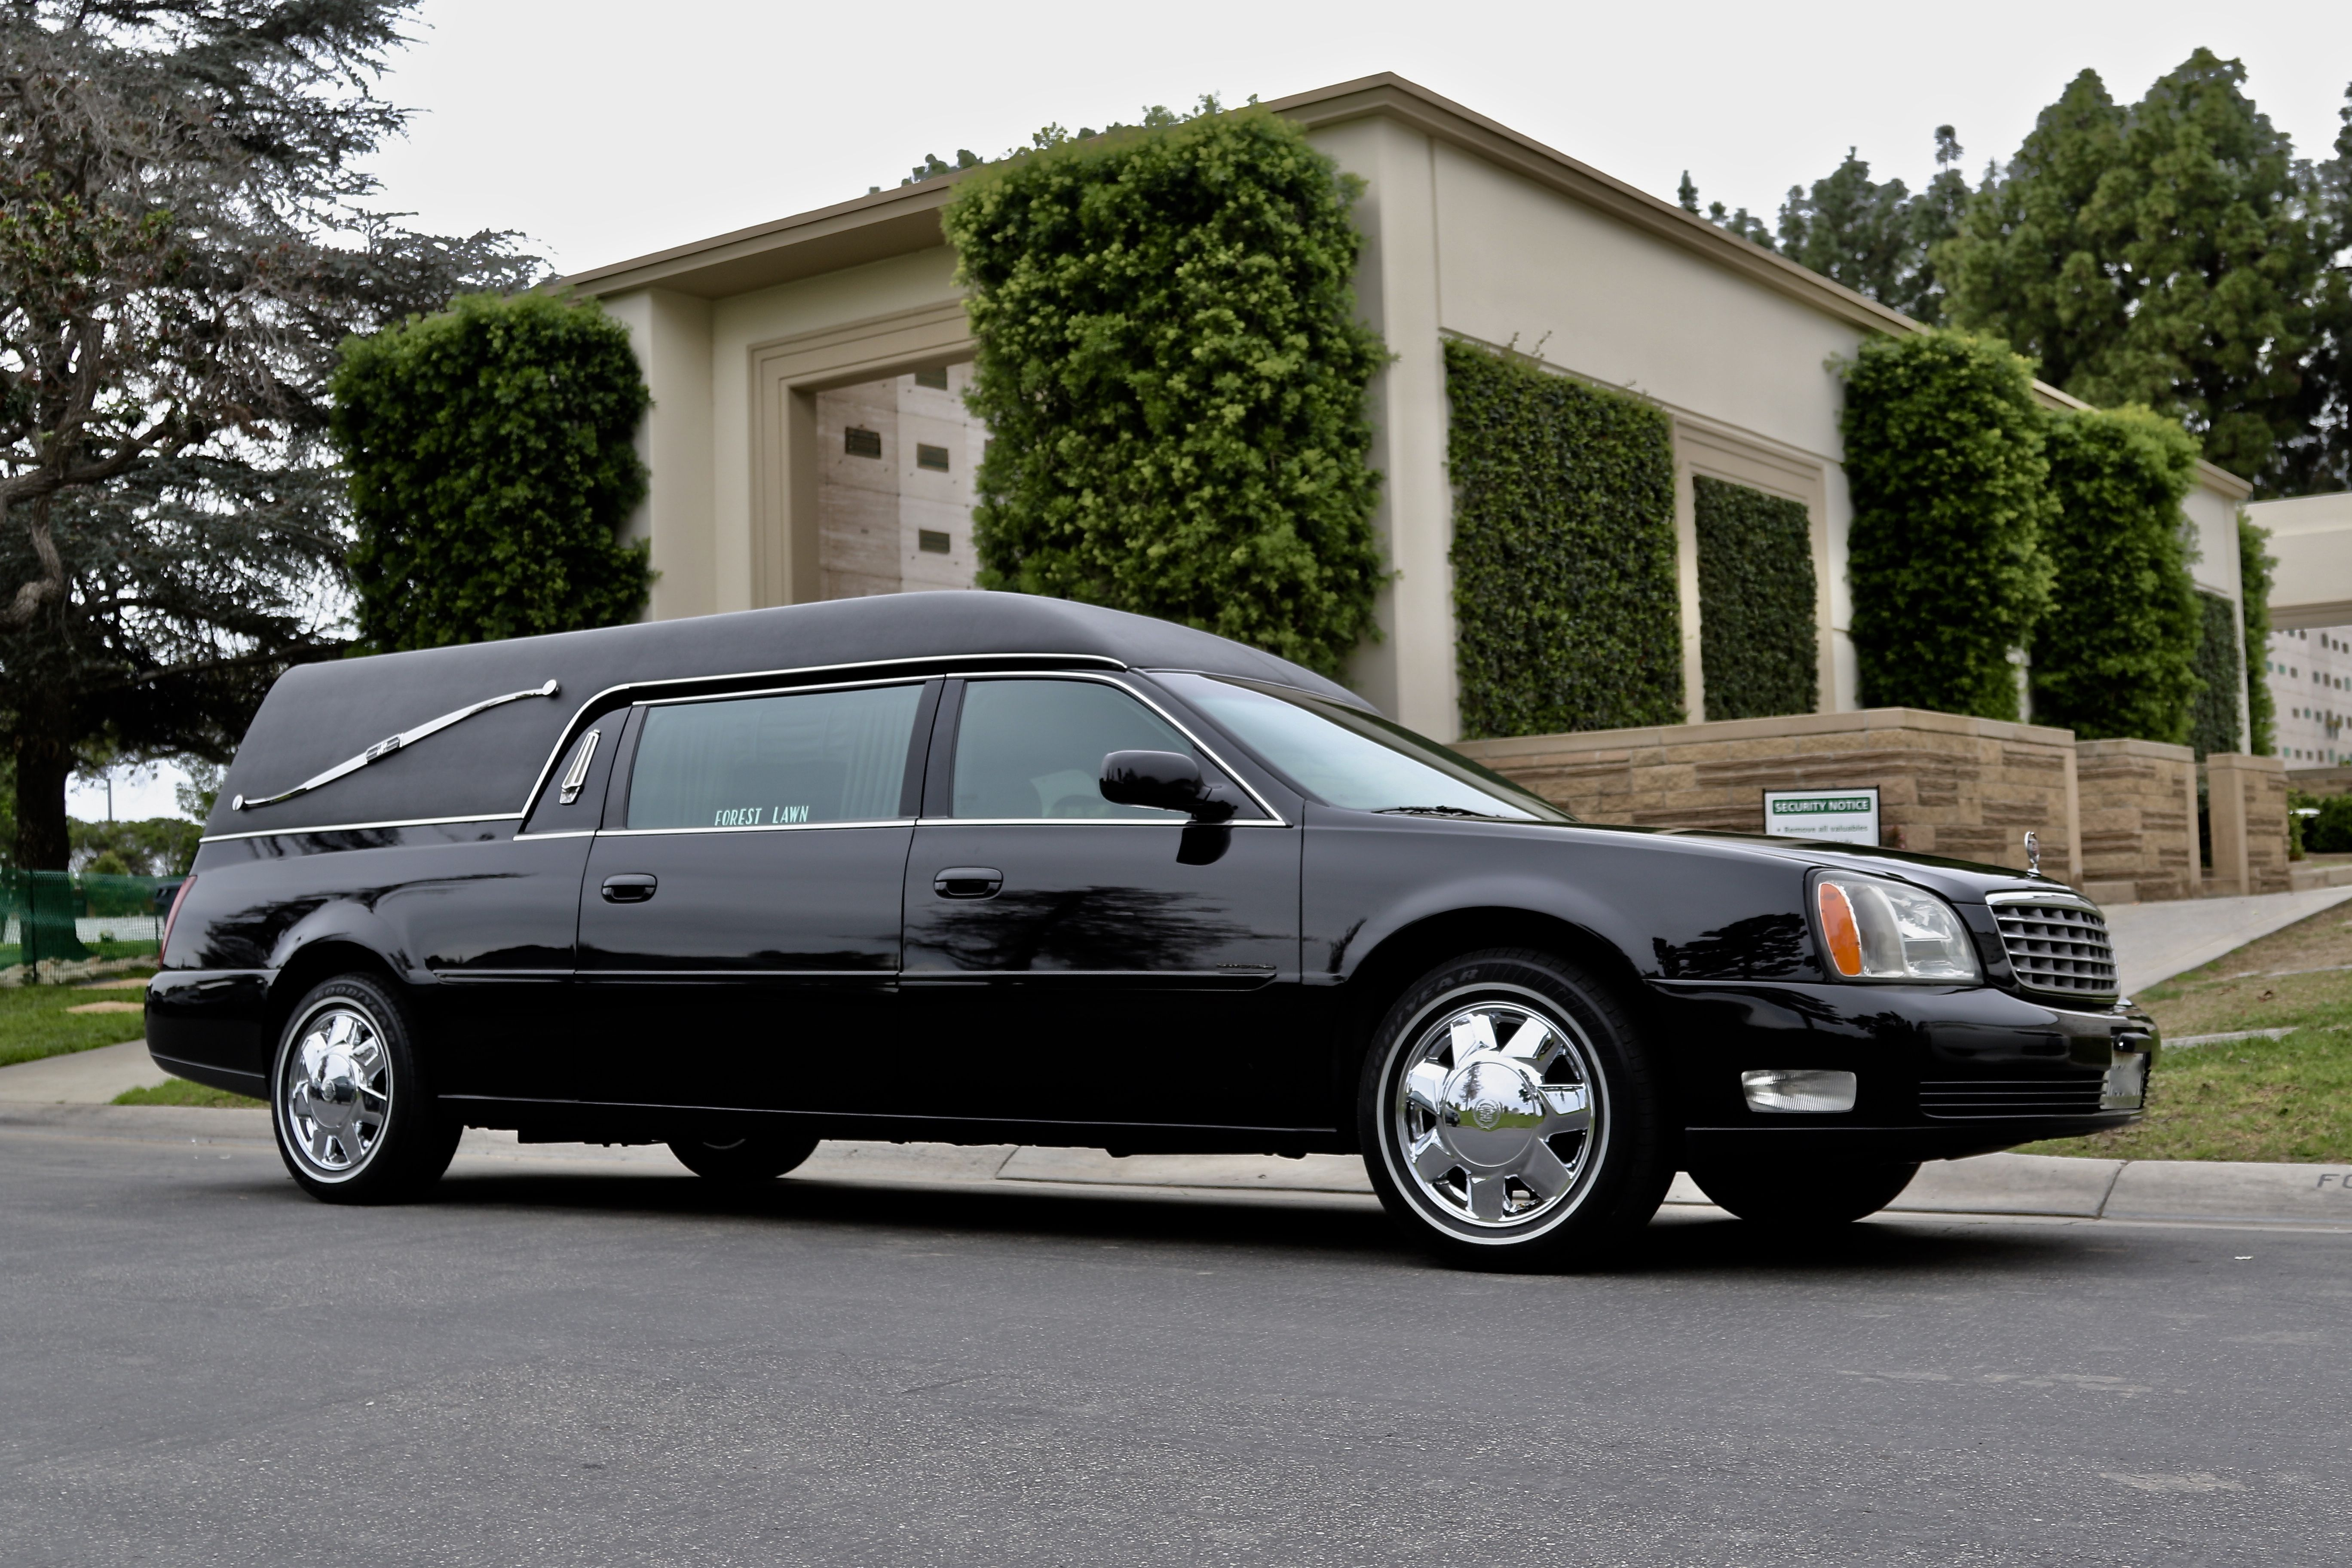 #Hearse at #ForestLawnMemorialPark #Cypress #CA  #Funeral photo by #OCdoves https://OCdoves.com